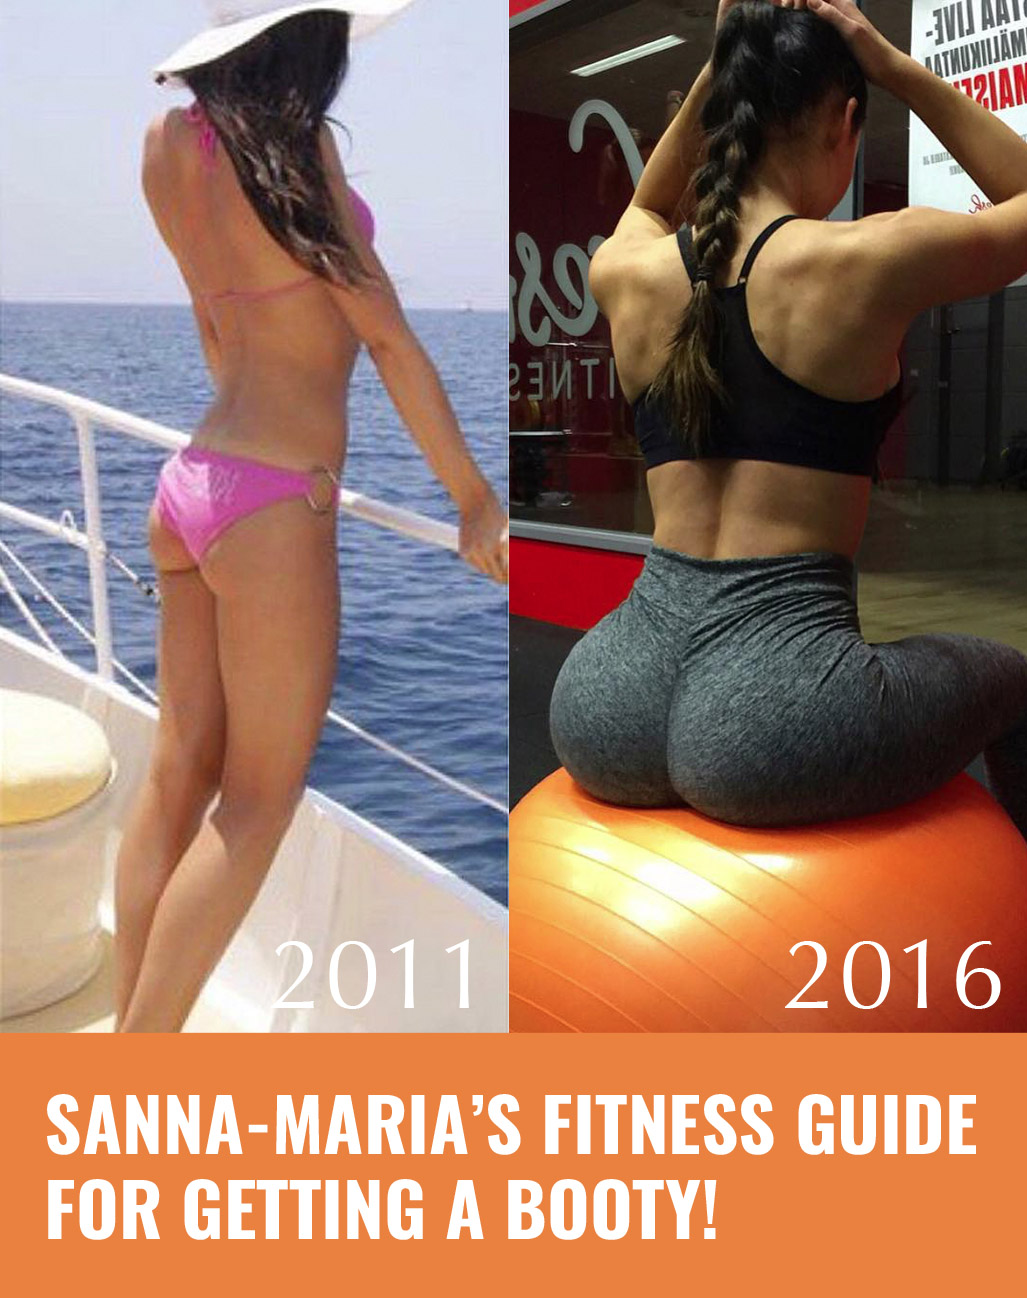 mssannamaria-fitness-guide